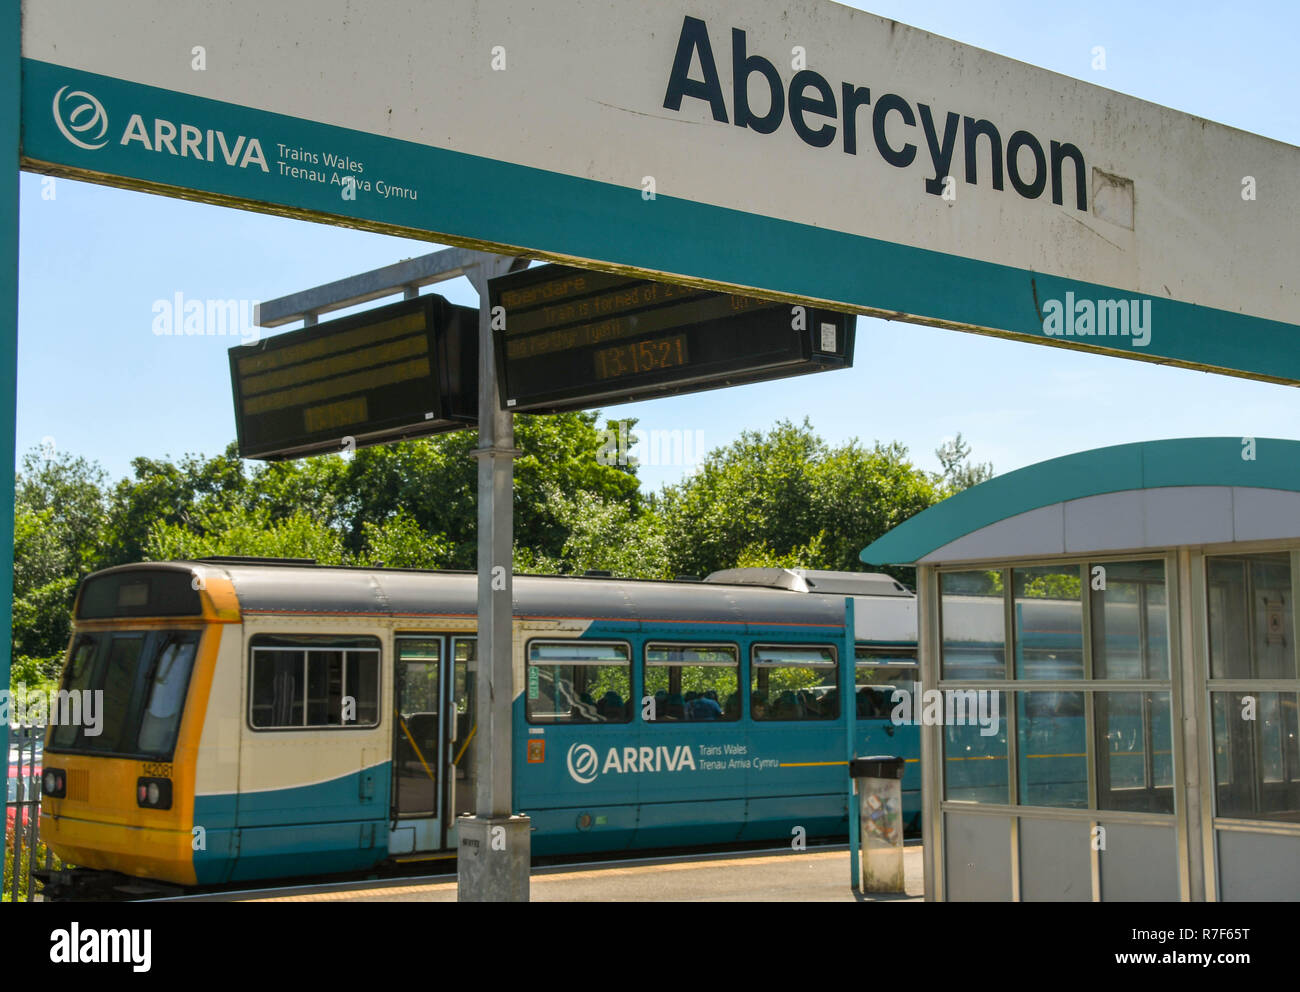 Diesel commuter train at a platform in Abercynon railway station in Rhondda Cynon Taf. The Valley Lines are part of the South Wales Metro. - Stock Image